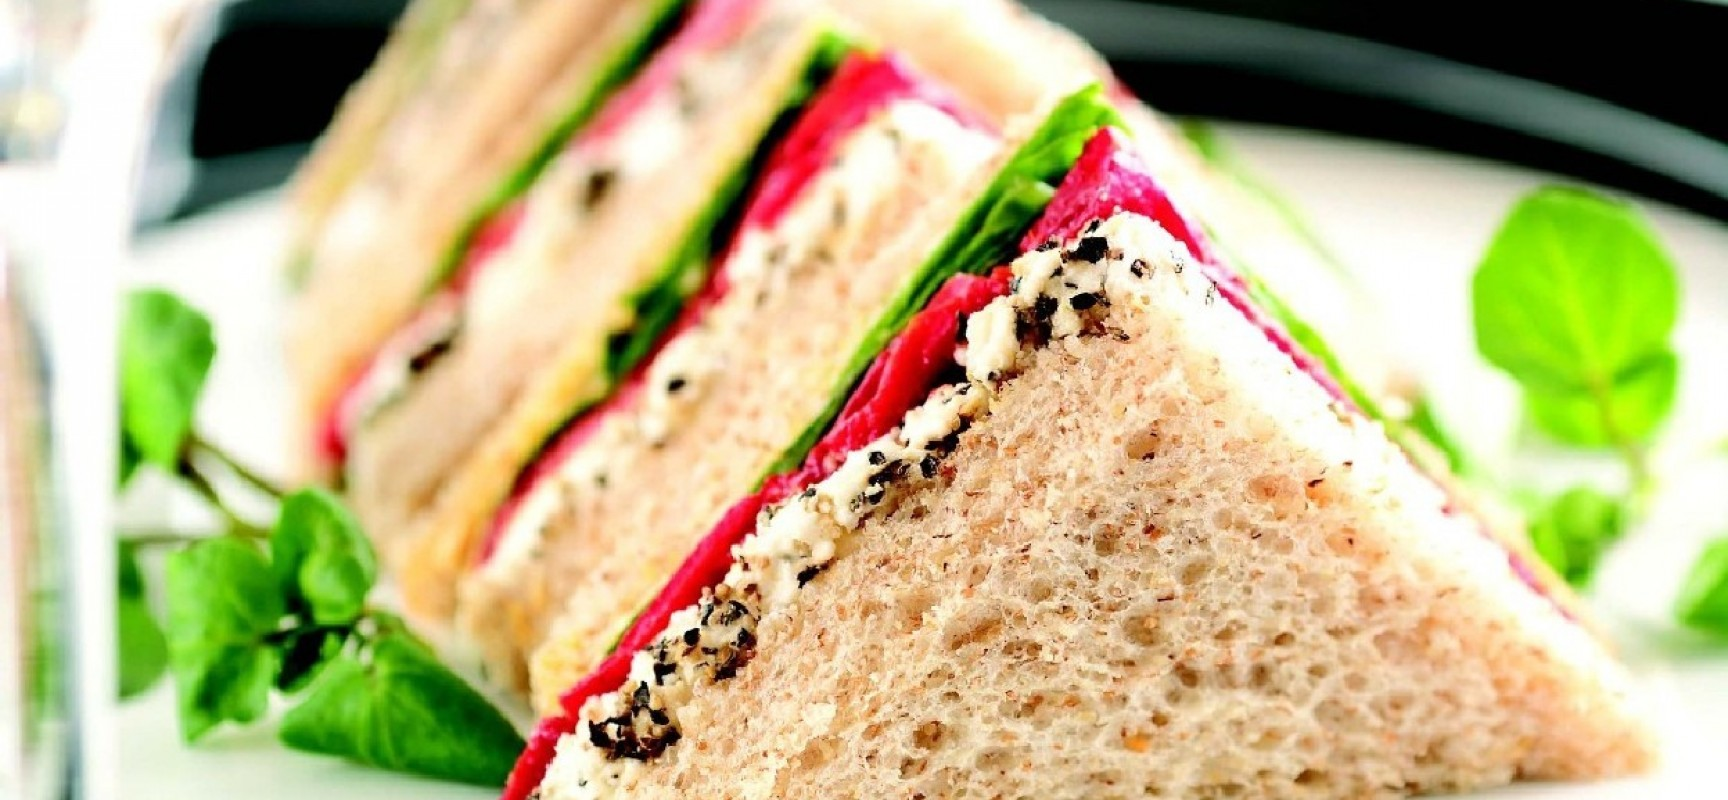 Easy sandwich recipes crave bits easy sandwich recipes forumfinder Images